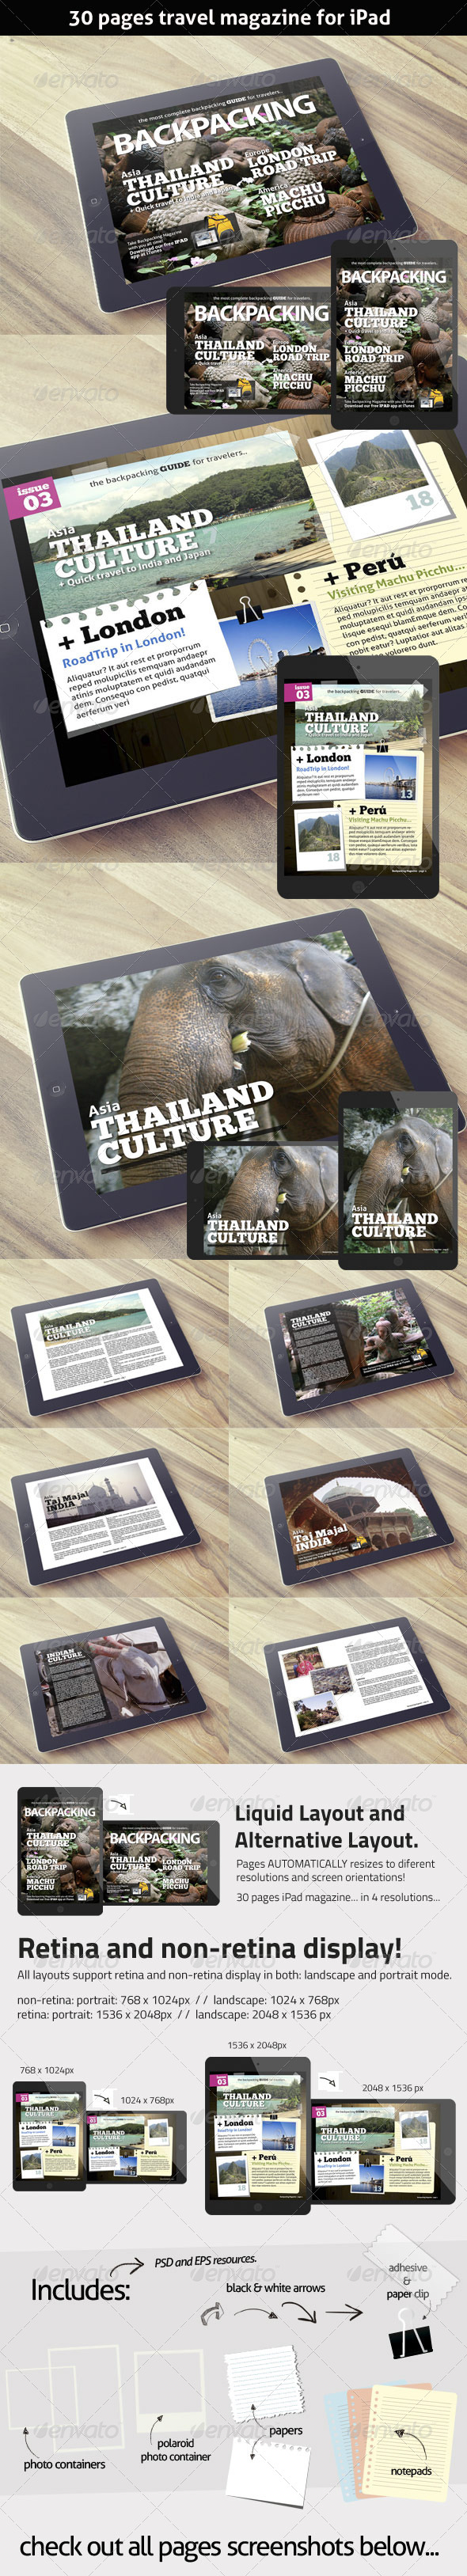 GraphicRiver BackPacking Magazine Template for iPad 7789397